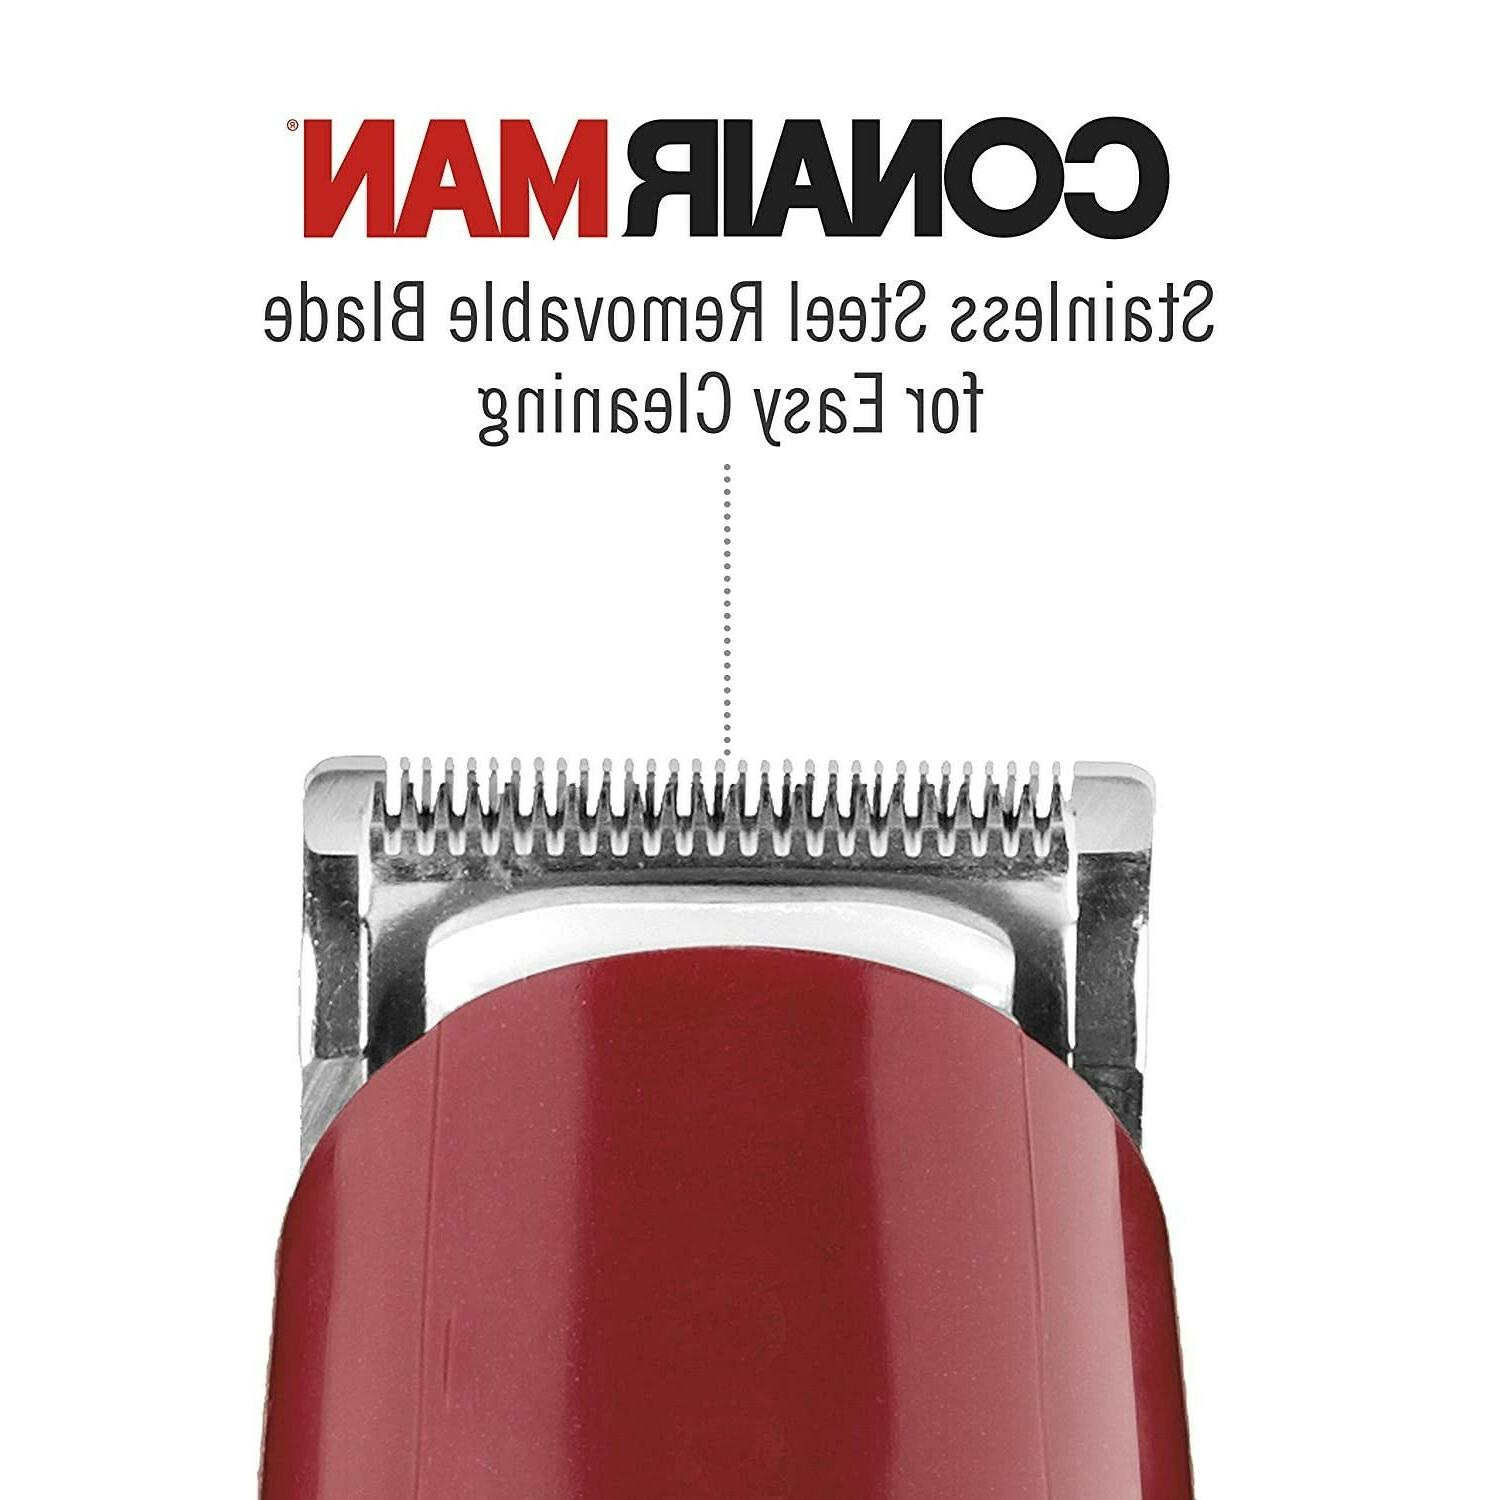 ConairMAN Mustache Trimmer, Includes All-Purpose Combs Corded/Plug-I